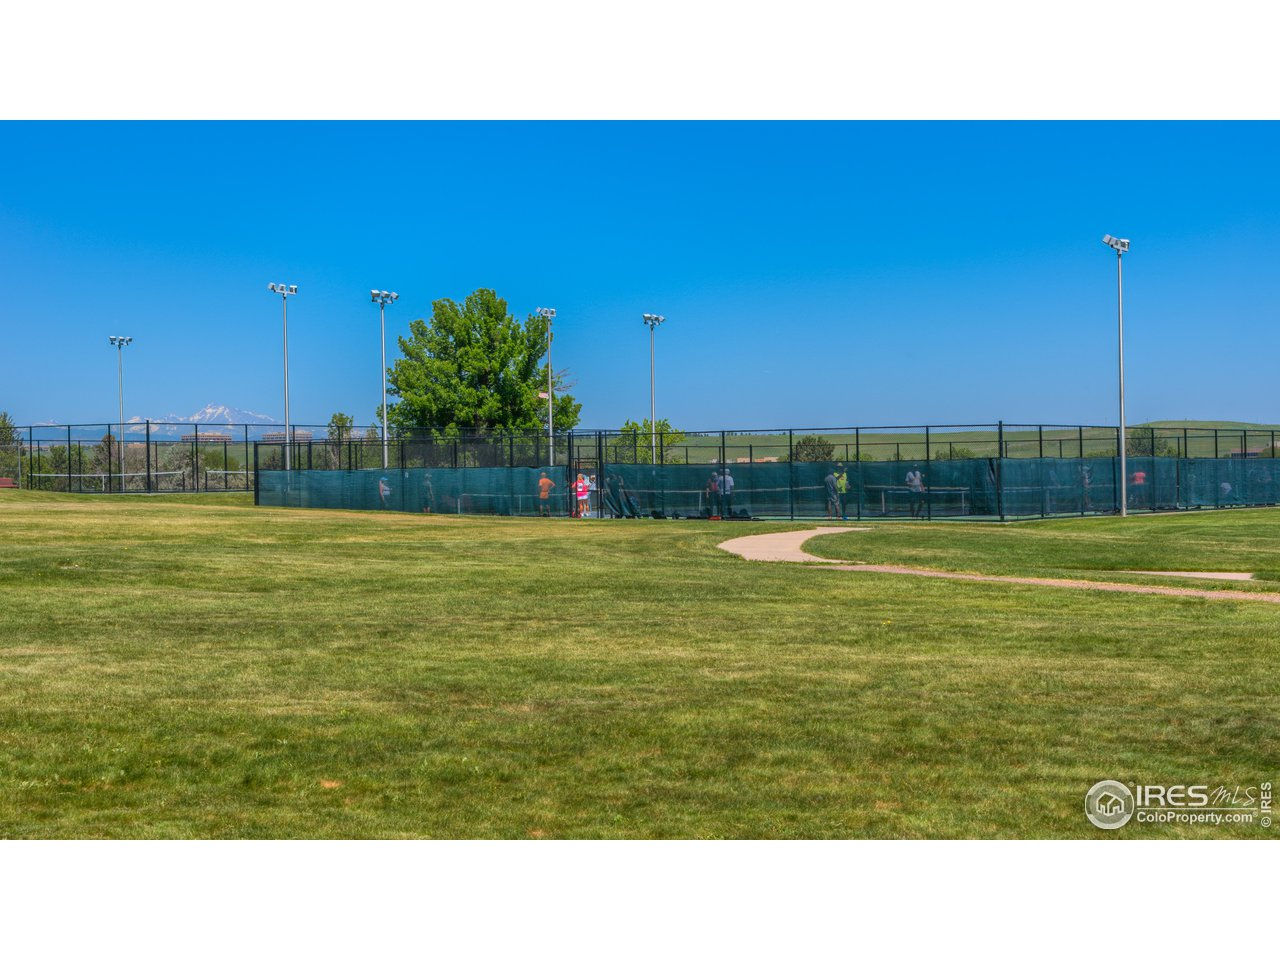 Countryside Park Tennis Courts